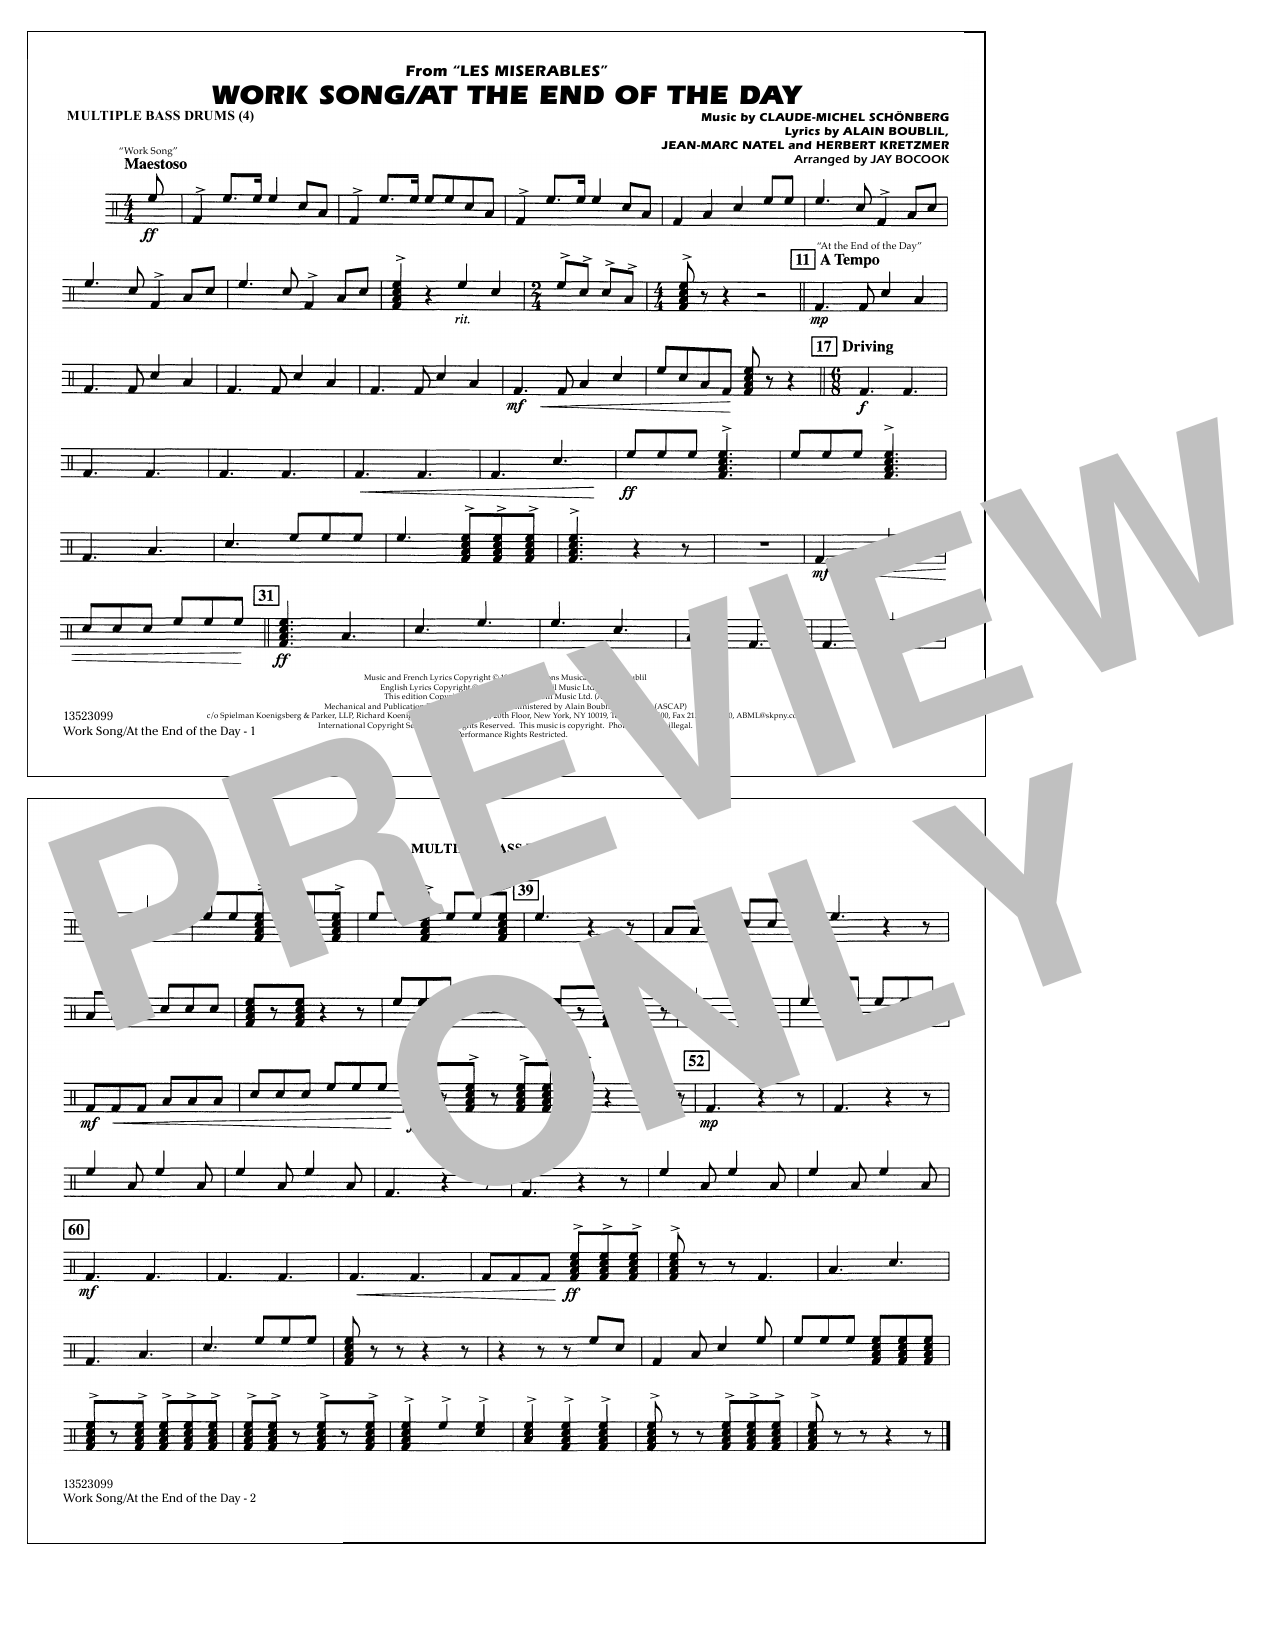 Work Song/At the End of the Day (Les Misérables) (arr. Jay Bocook) - Multiple Bass Drums (Marching Band)